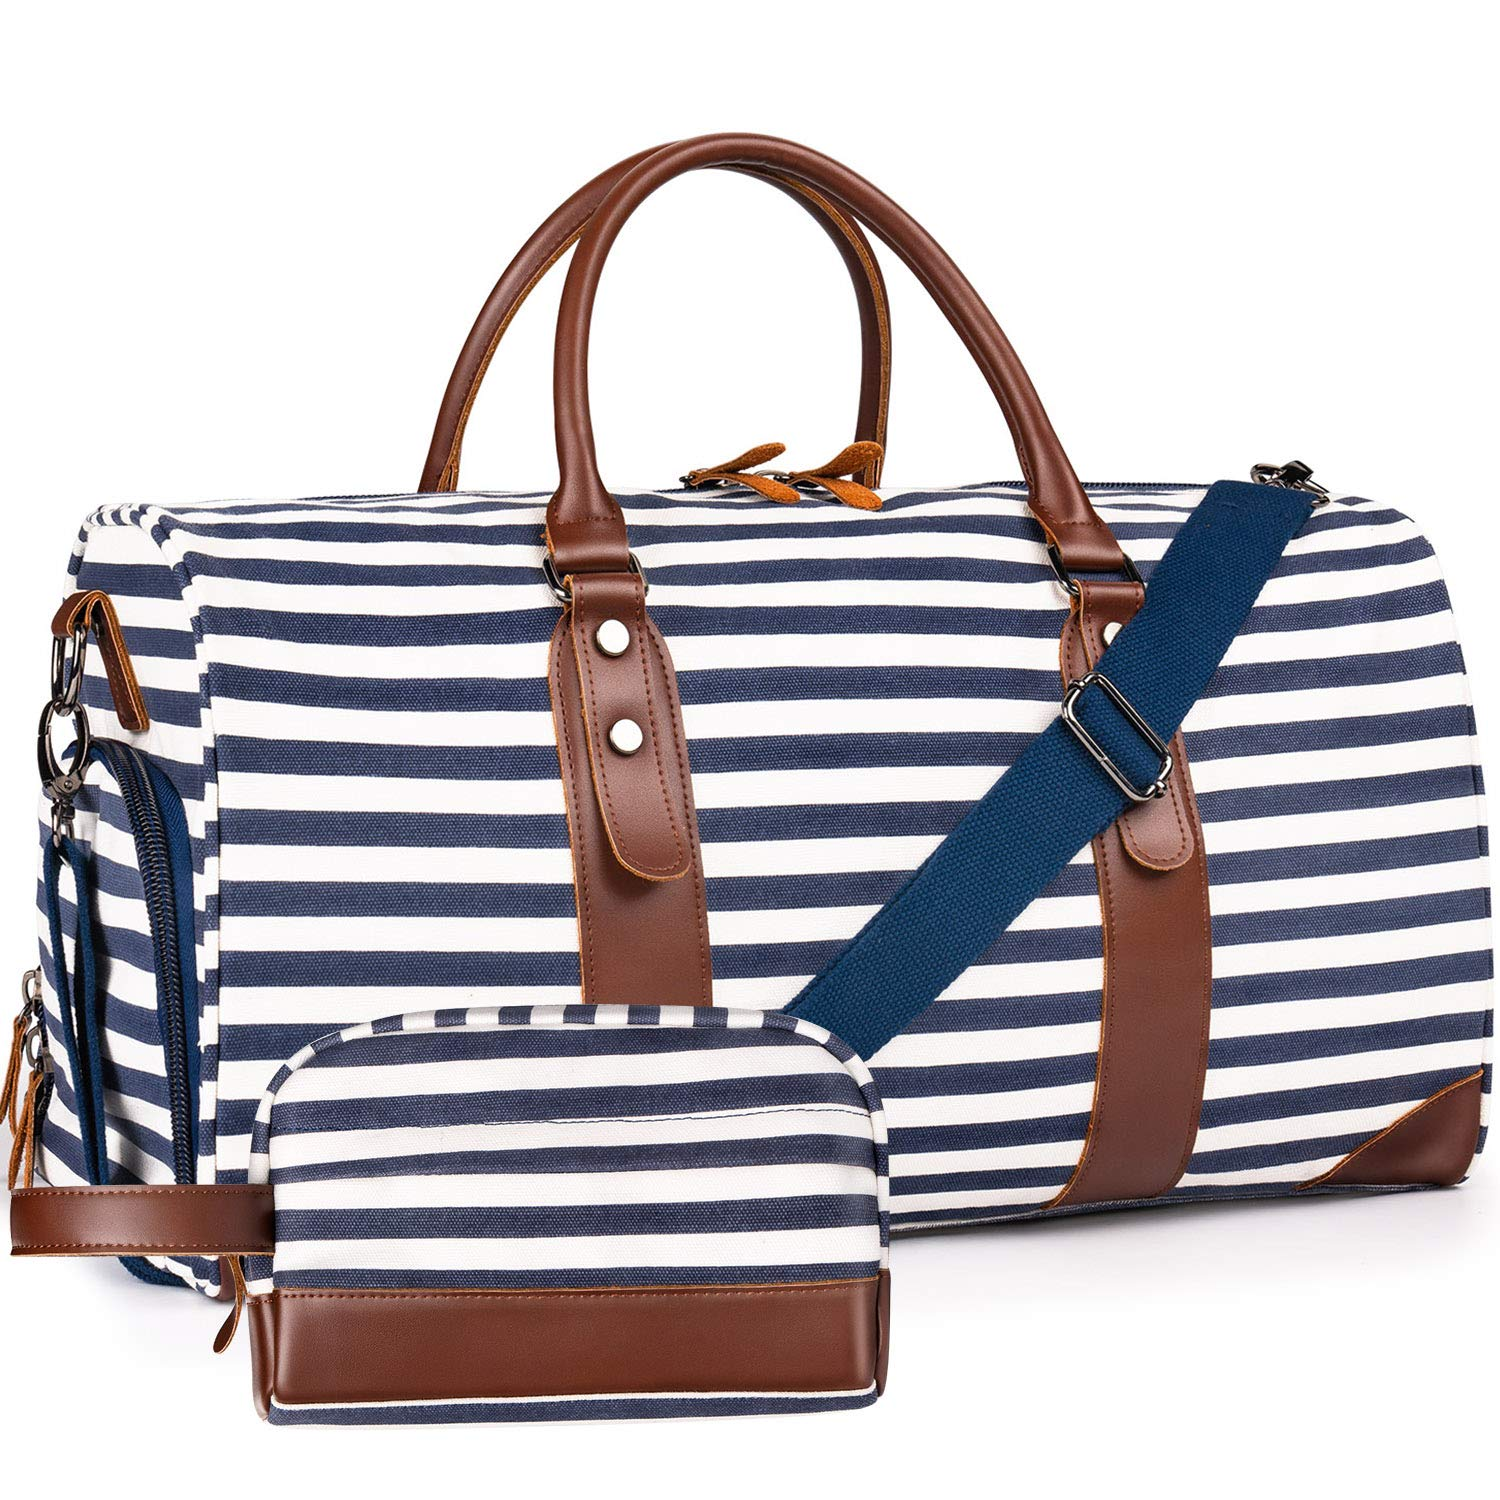 Oflamn Weekender Bags Canvas Leather Duffle Bag Overnight Travel Carry On Tote Bag with Shoe Pouch (Blue/White Striped) by Oflamn